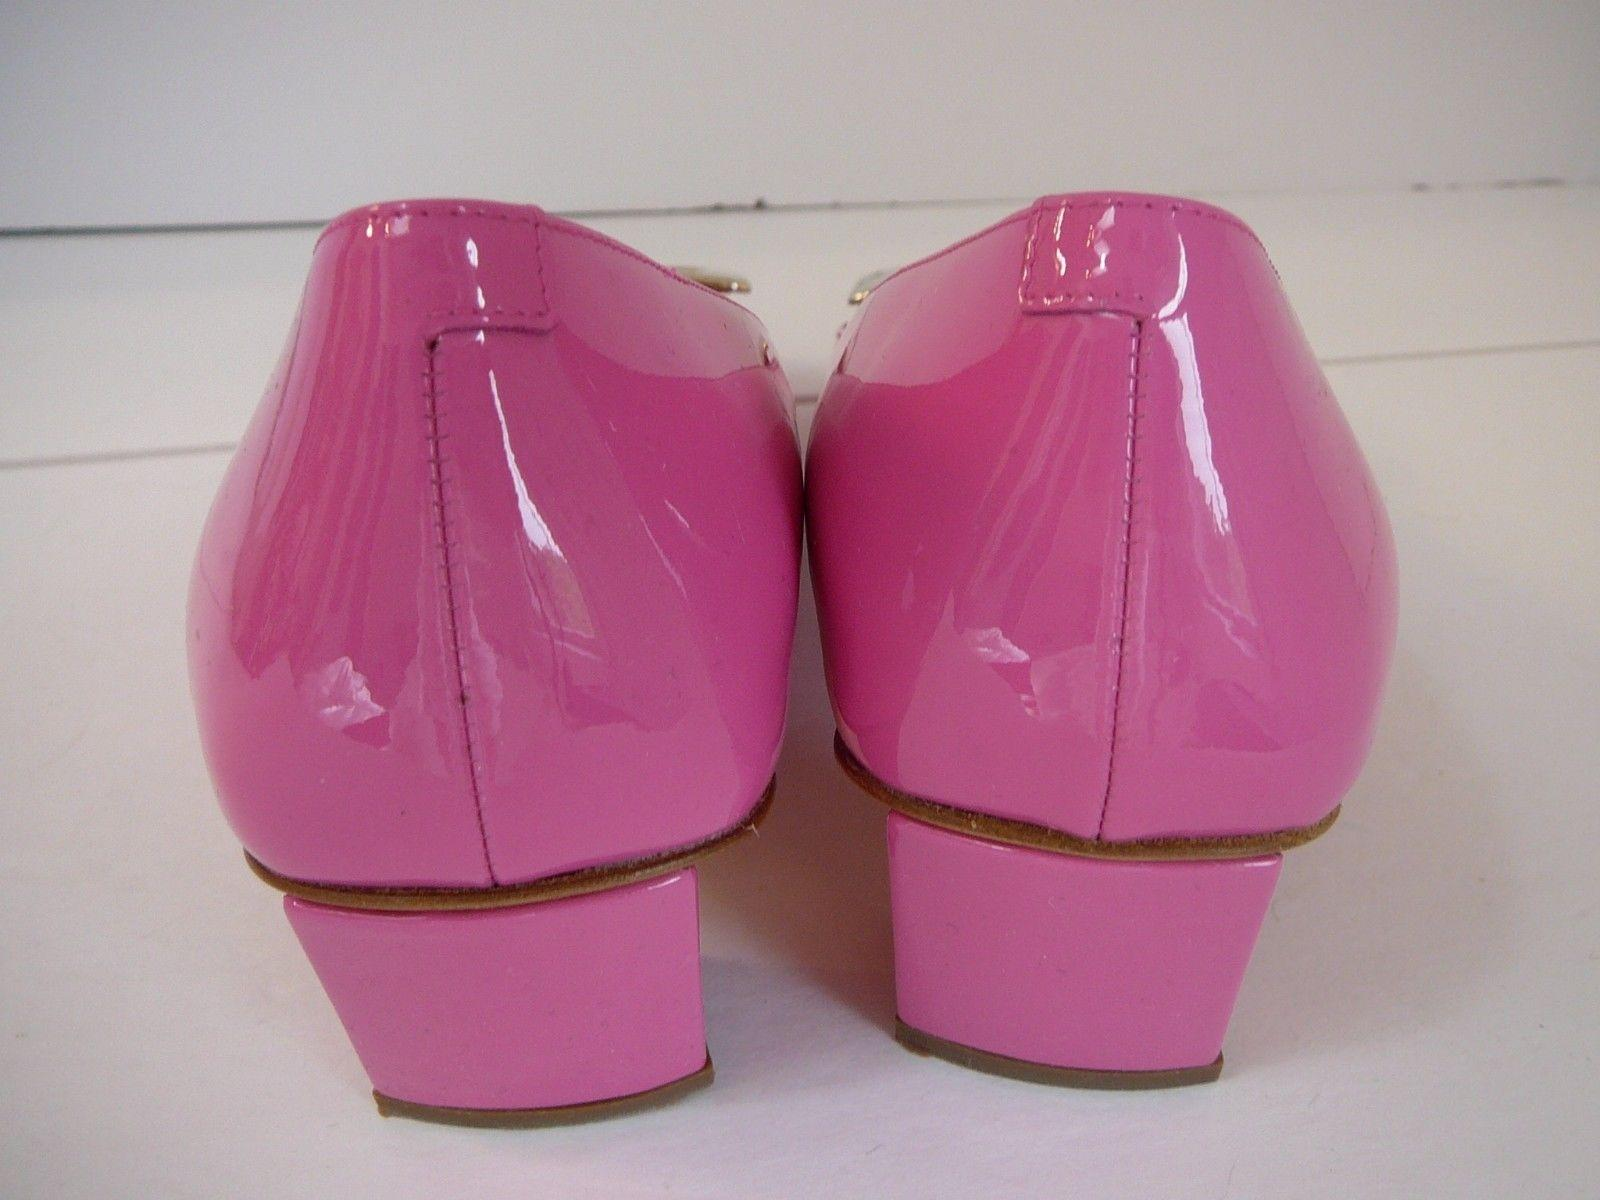 4b7d46faa9a3 ... Roger Vivier Pink New 38 38 38 Sold Out Pumps Size US 8 Regular (M ...